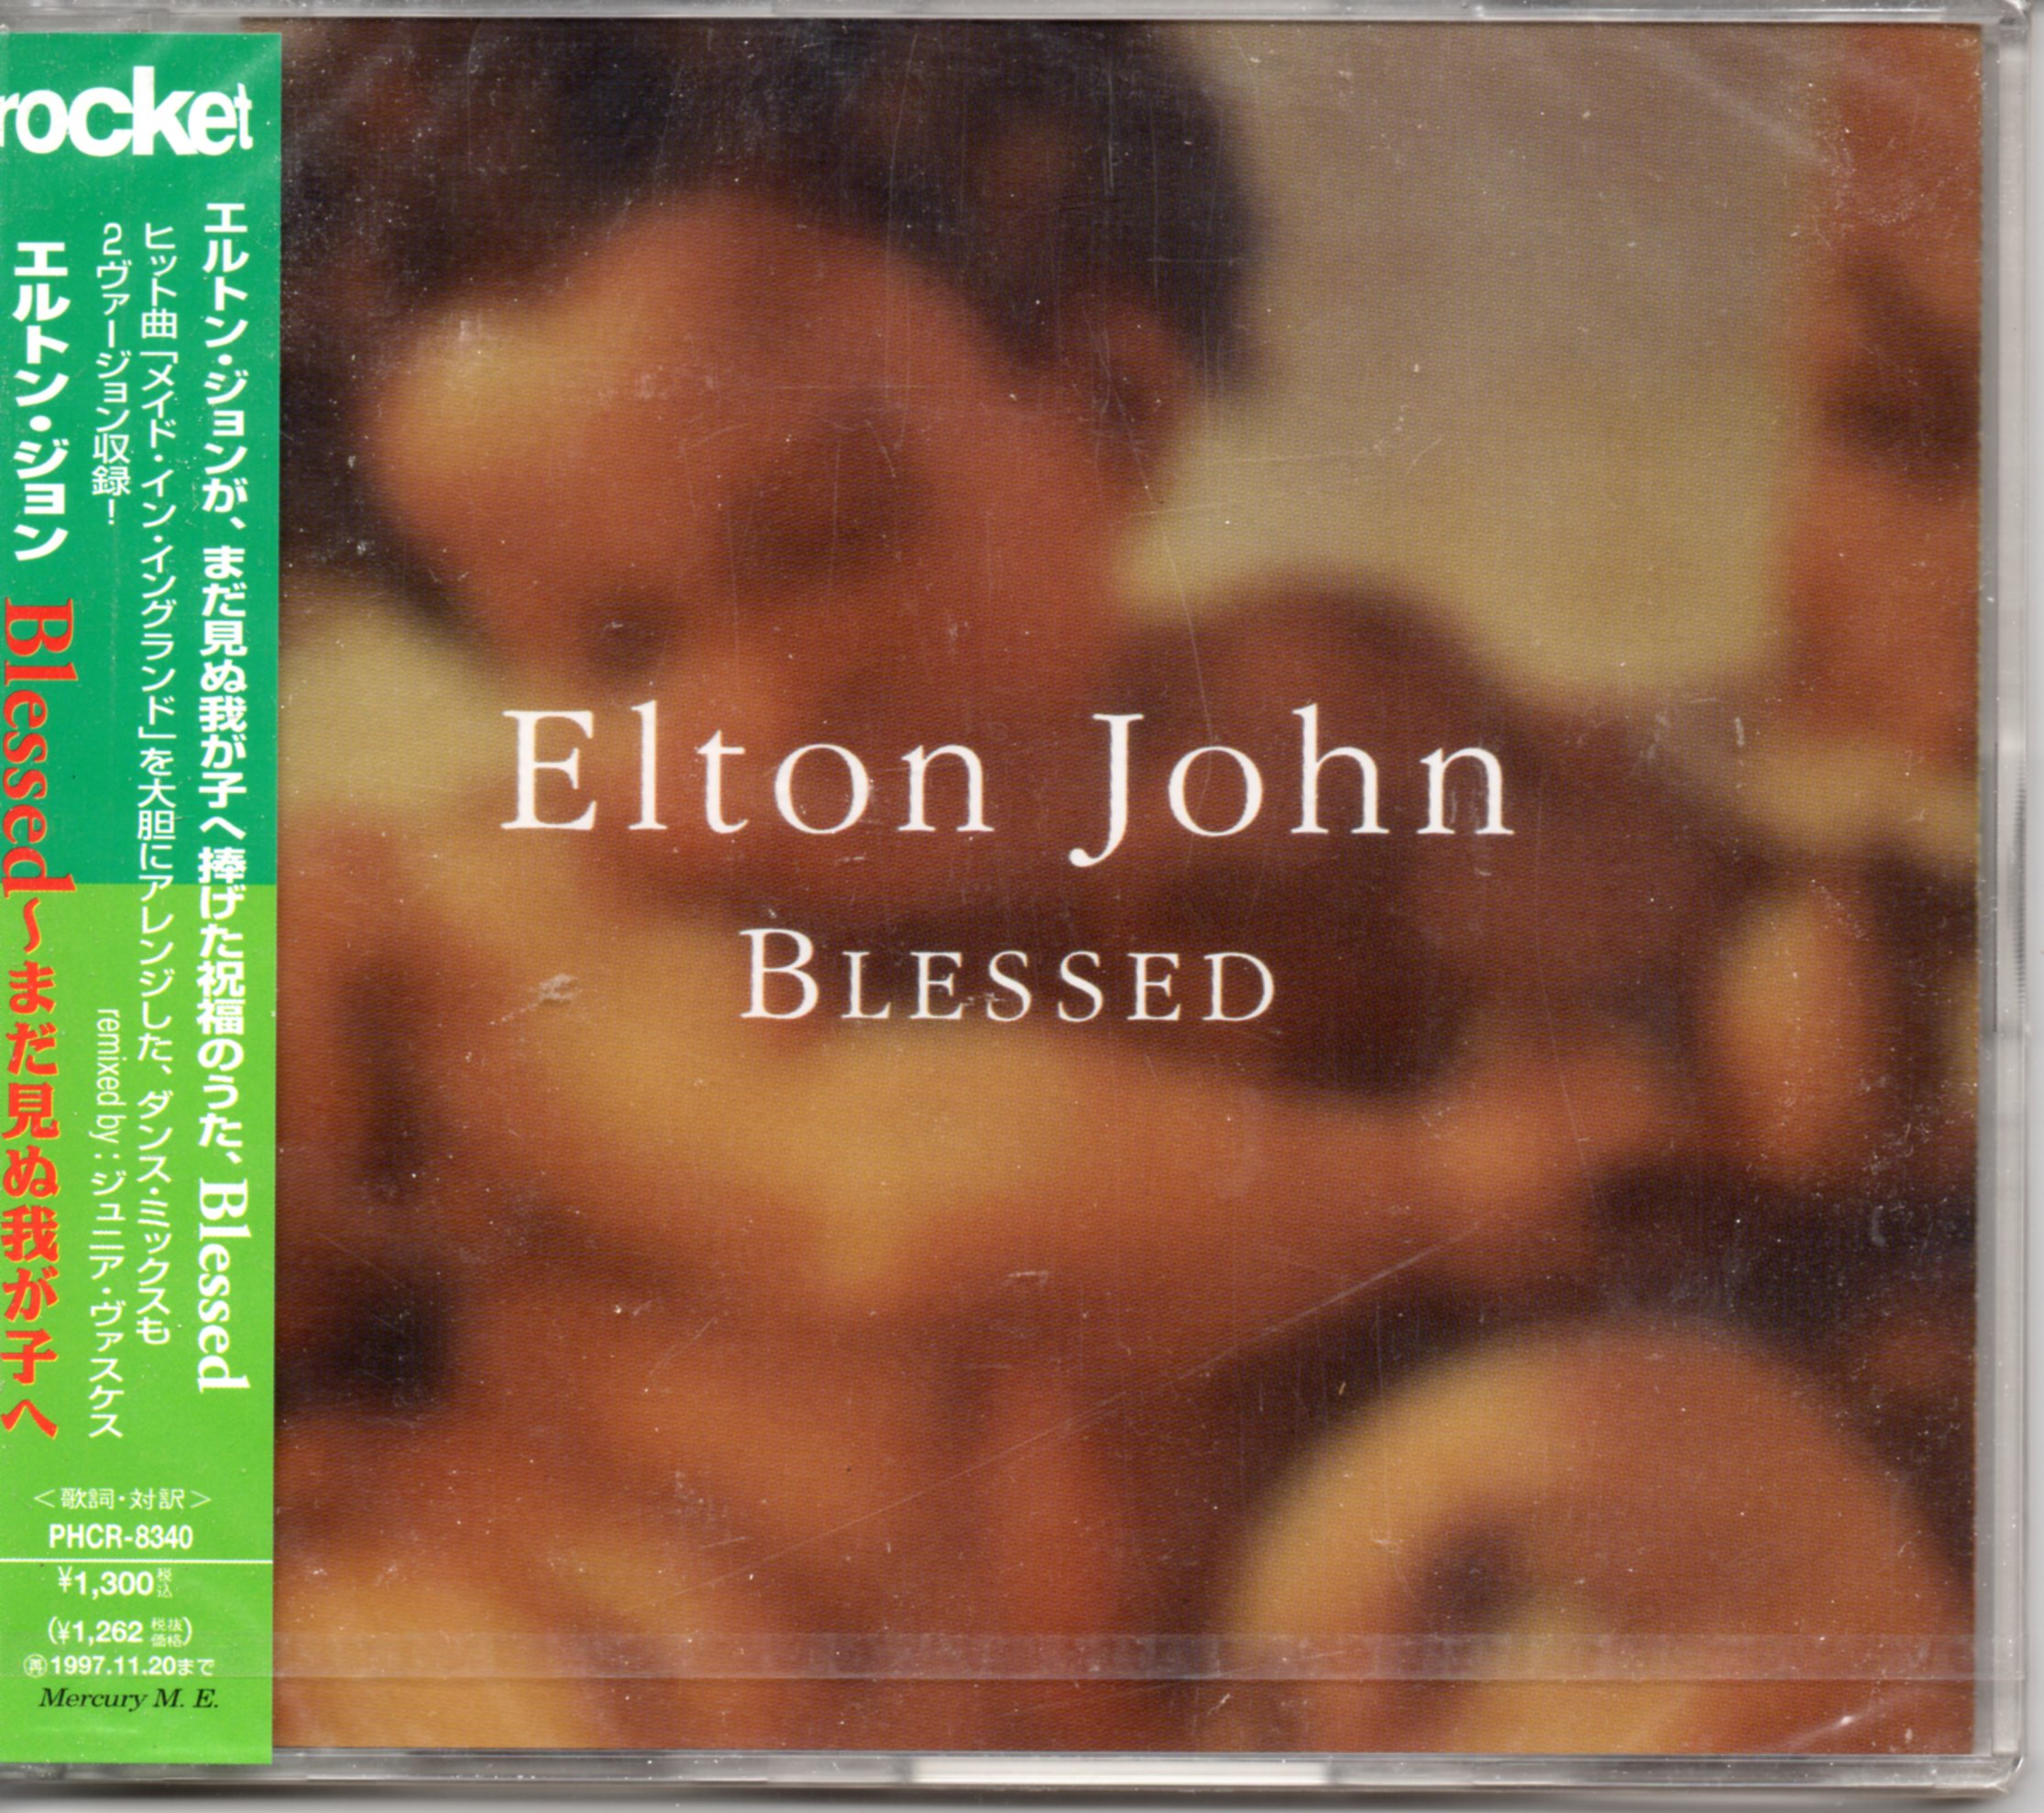 ELTON JOHN - Blessed Japan 3-Track Jewel case - CD Maxi